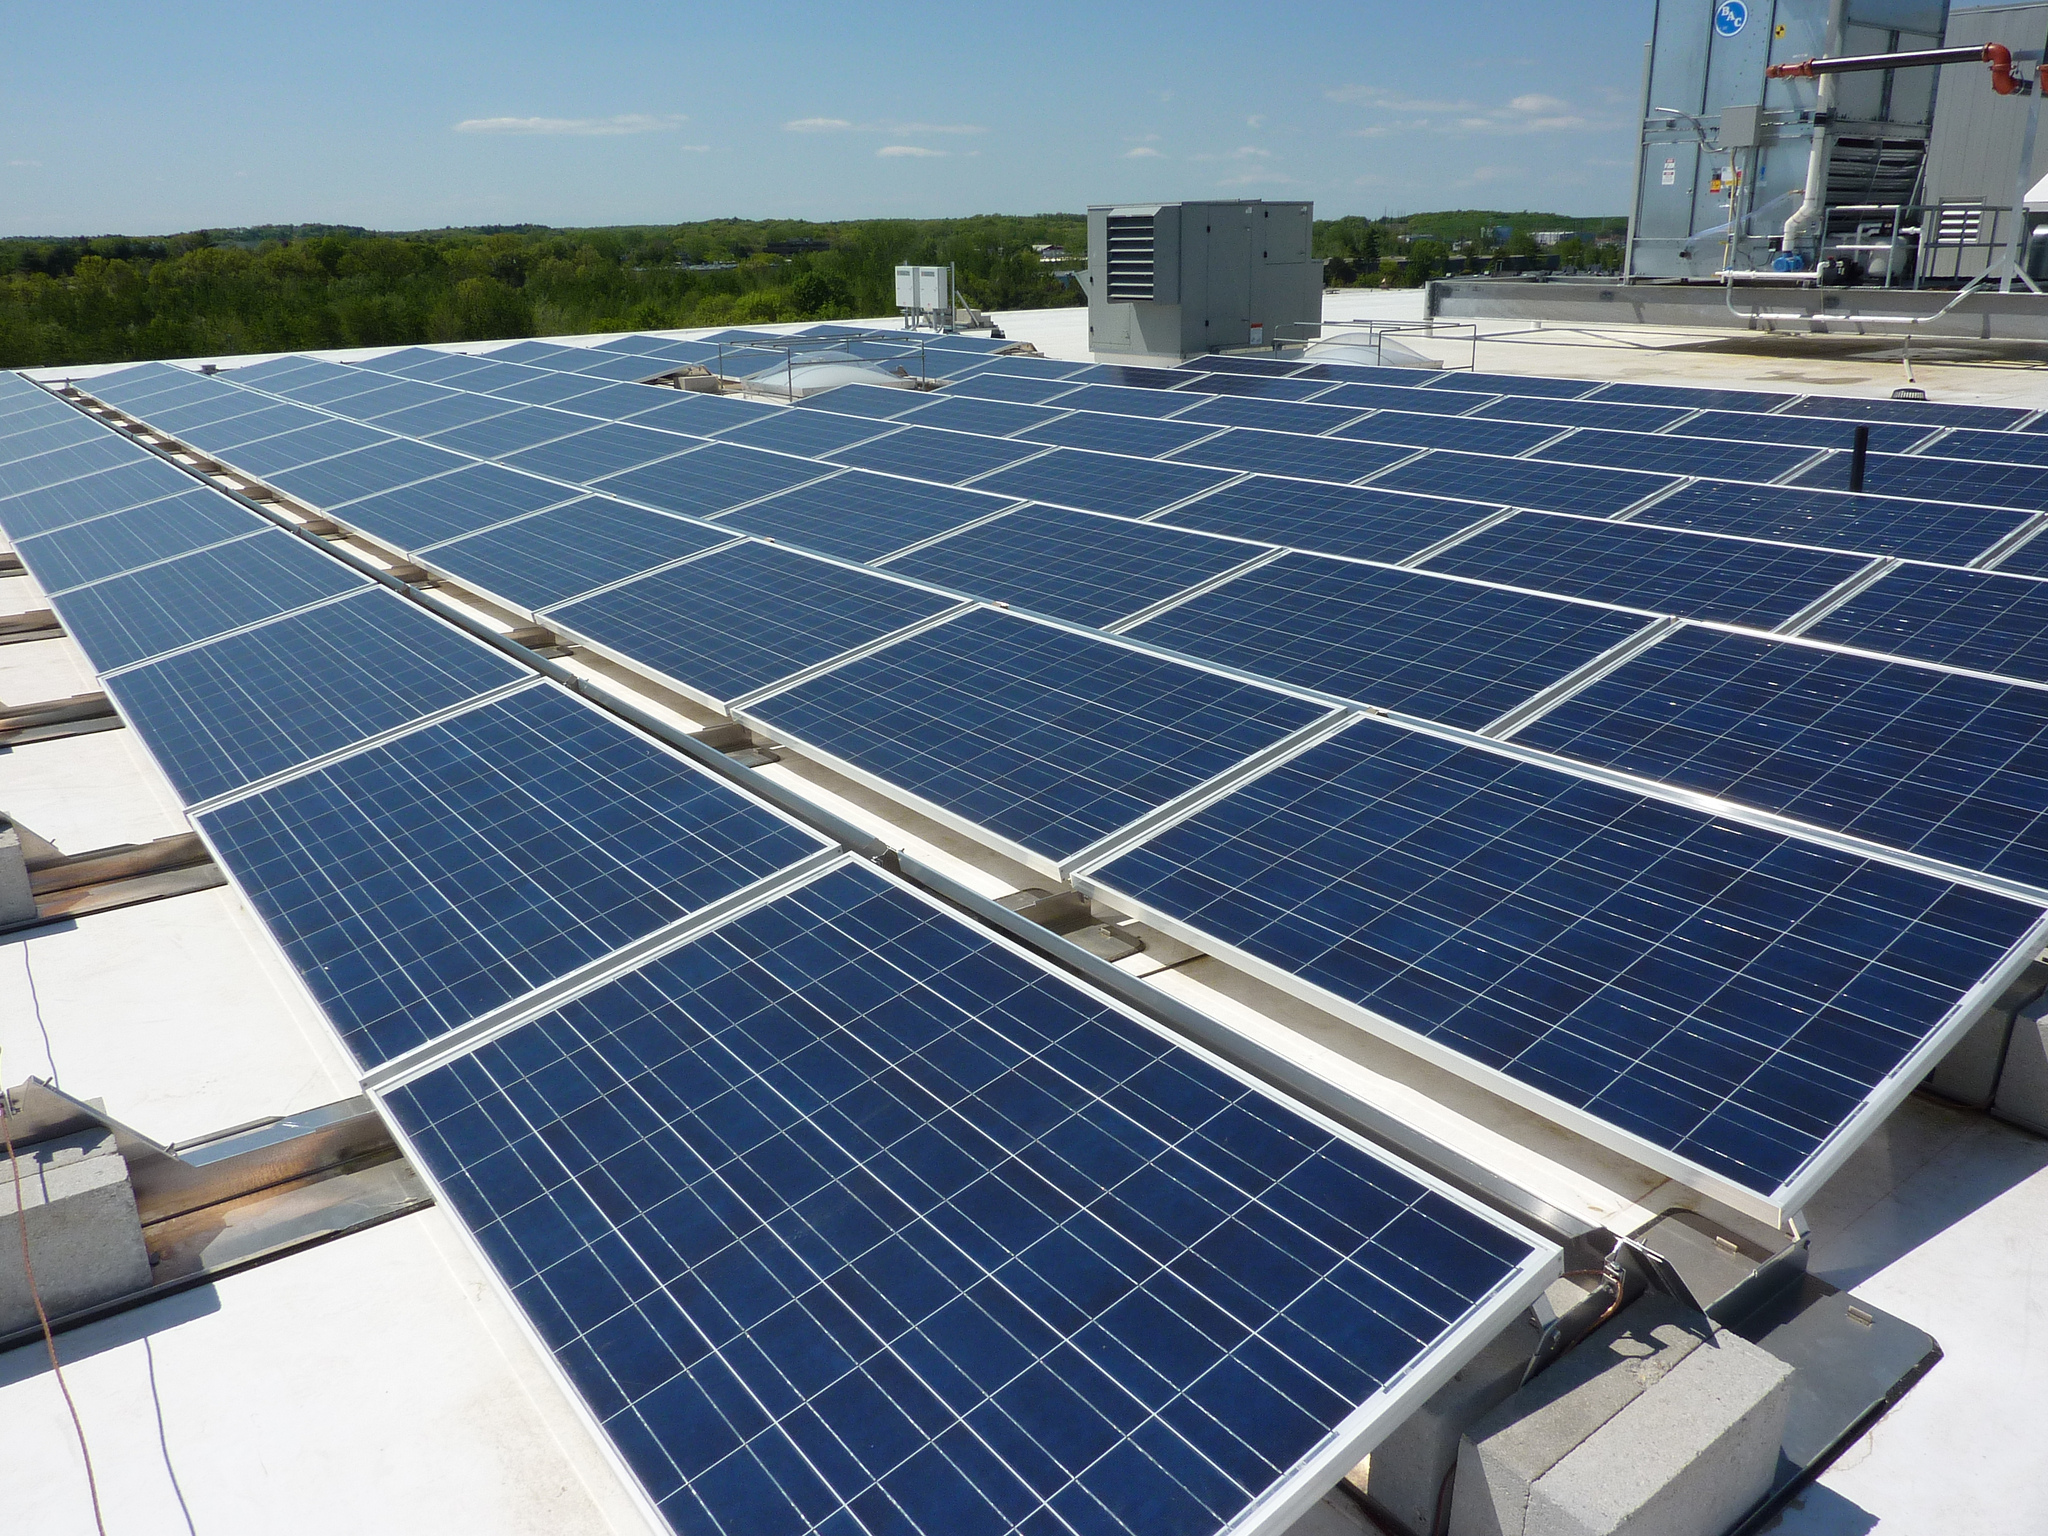 WGL Energy Systems has secured a US$75 million financing package from M&T Bank to provide funding for future PV projects in the US. Image: Cummings Properties / Flickr